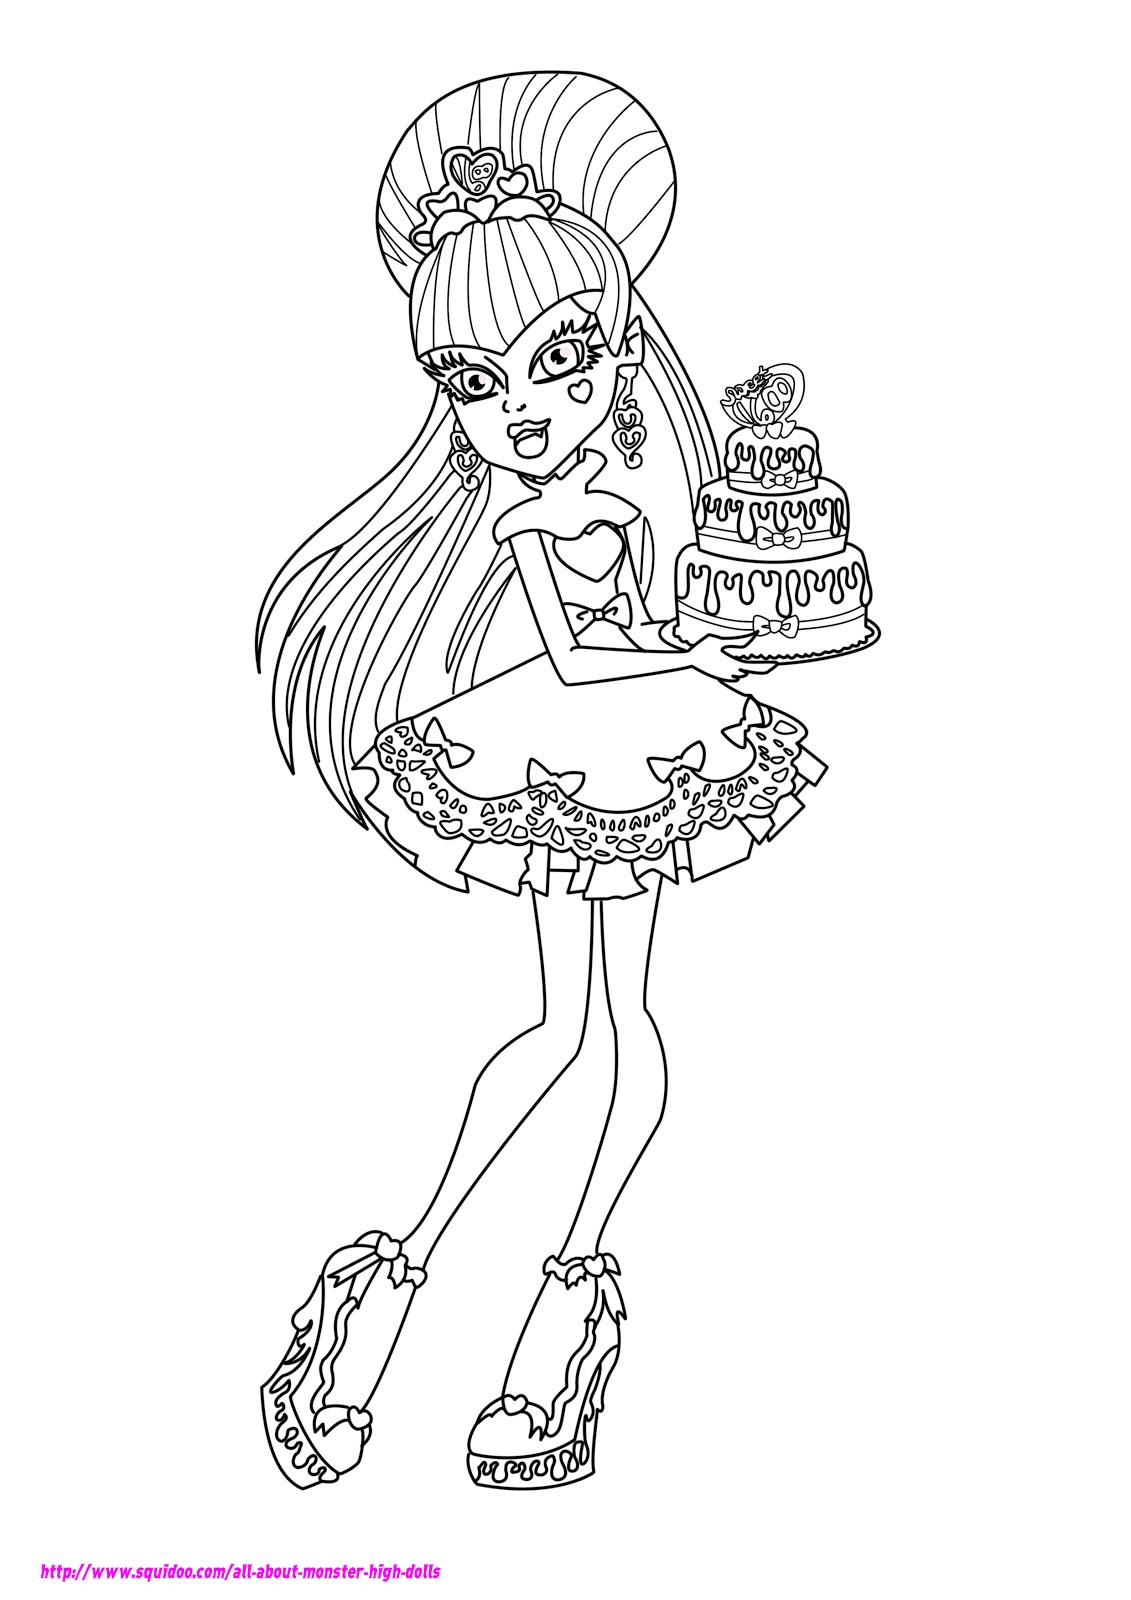 Monster High Coloring Pages On Pinterest